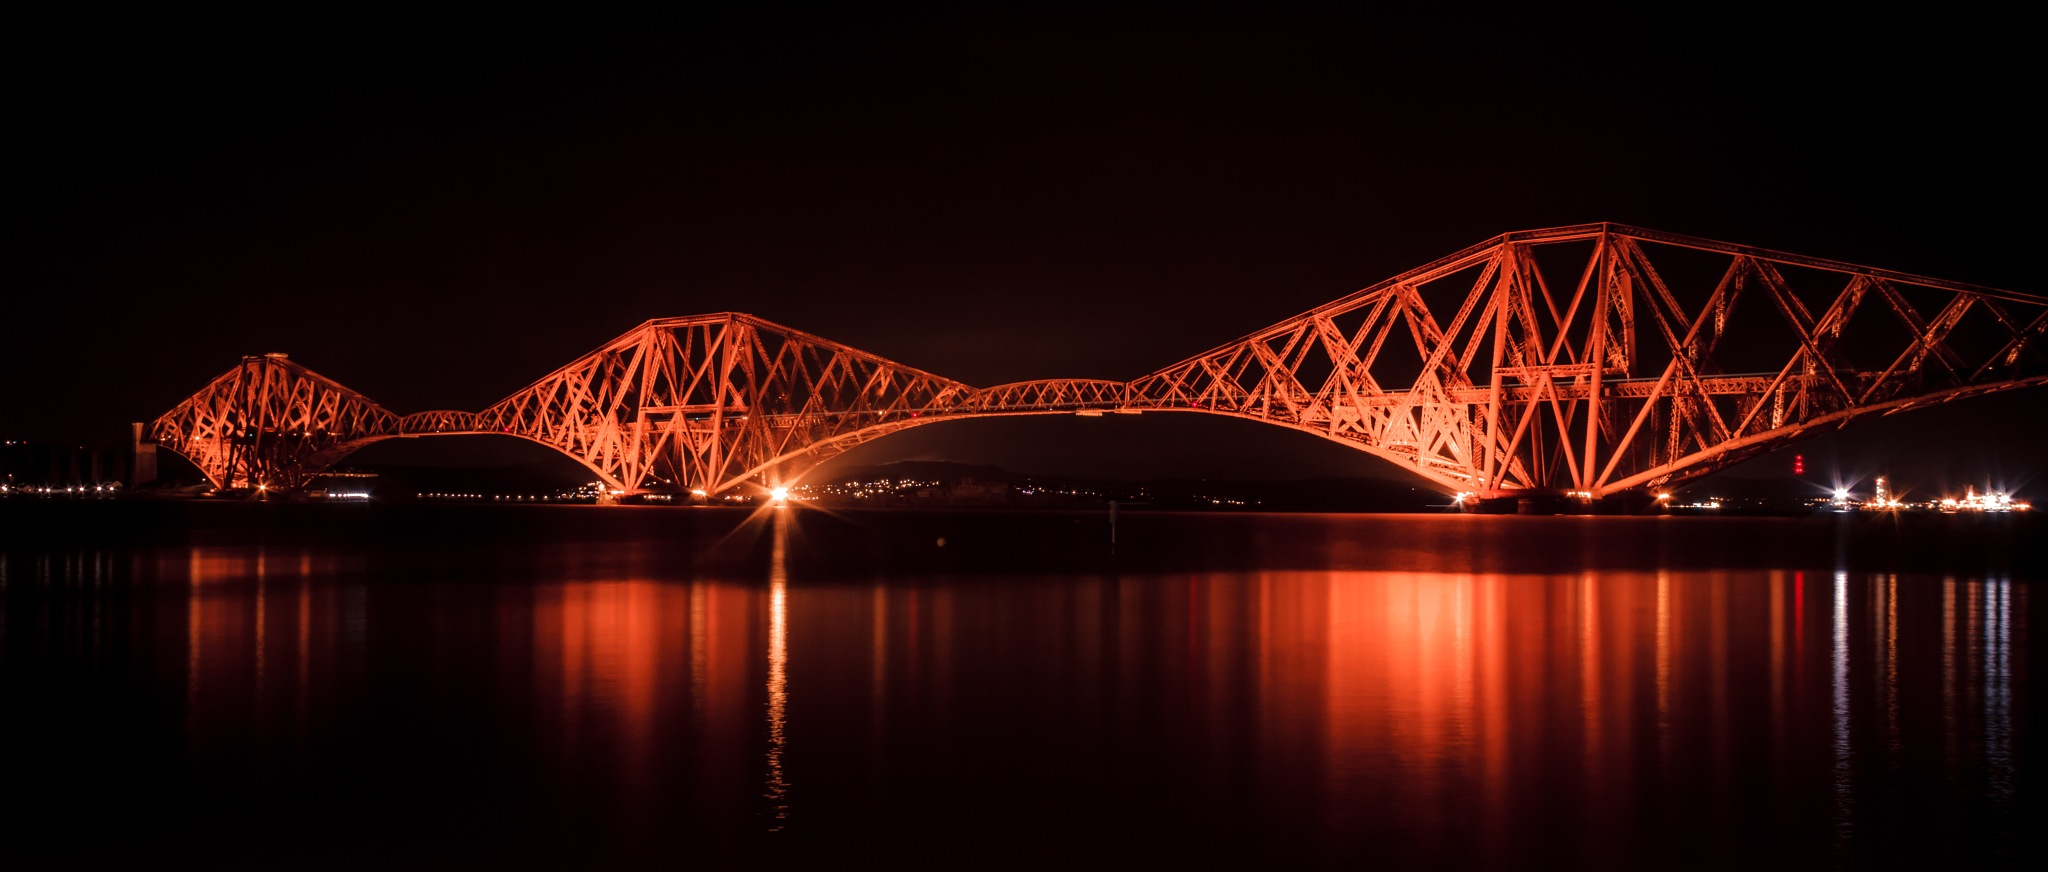 Photo in Architecture #bridge #archbridge #forth #forthbridge #reflection #scotland #queensferry #southqueensferry #water #sea #evening #night #travel #travelphotography #photo #photography #rodriguesfhs